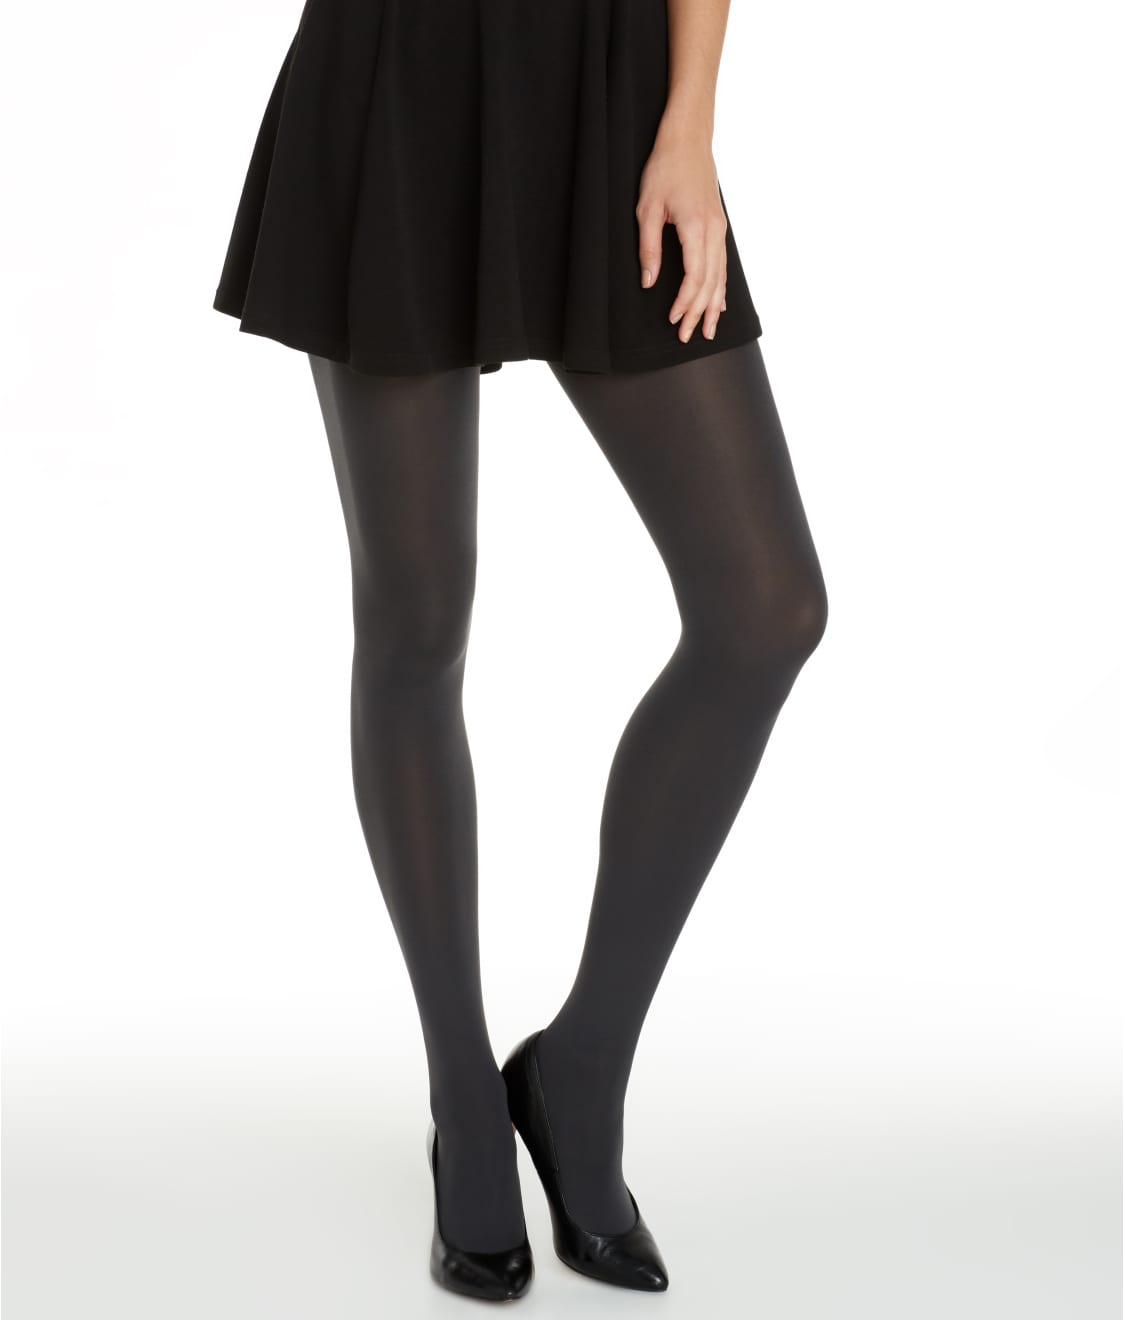 921d0581d15ef8 HUE StyleTech Blackout Tights | Bare Necessities (14526)